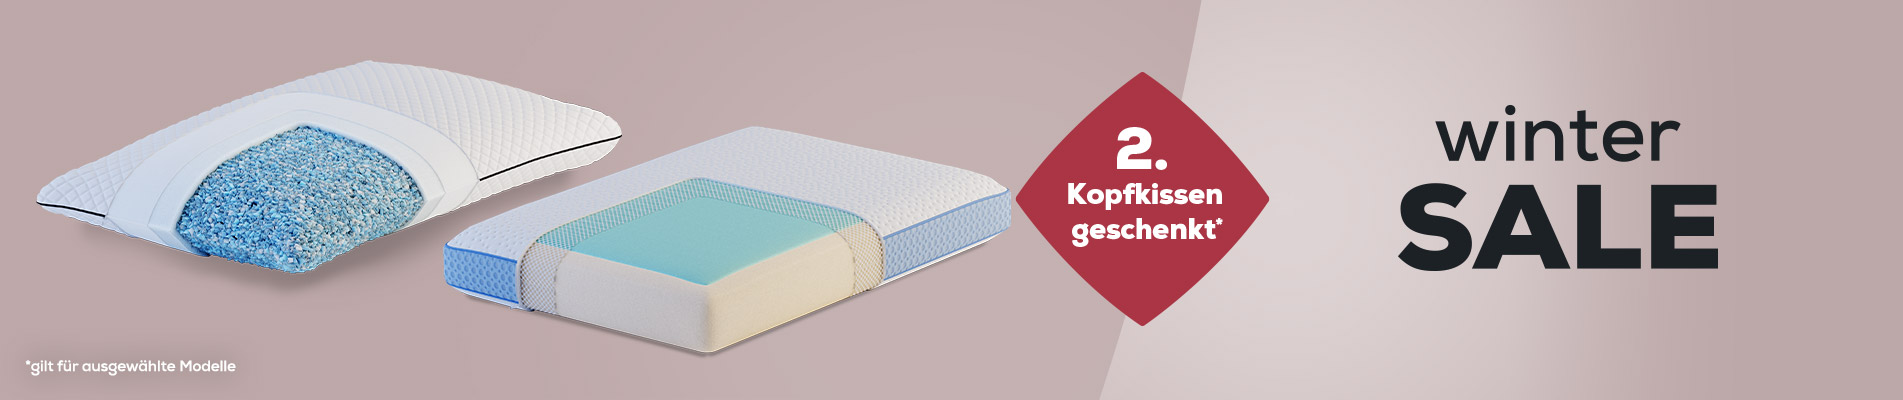 Winter Sale Kopfkissen  banner | Swiss Sense